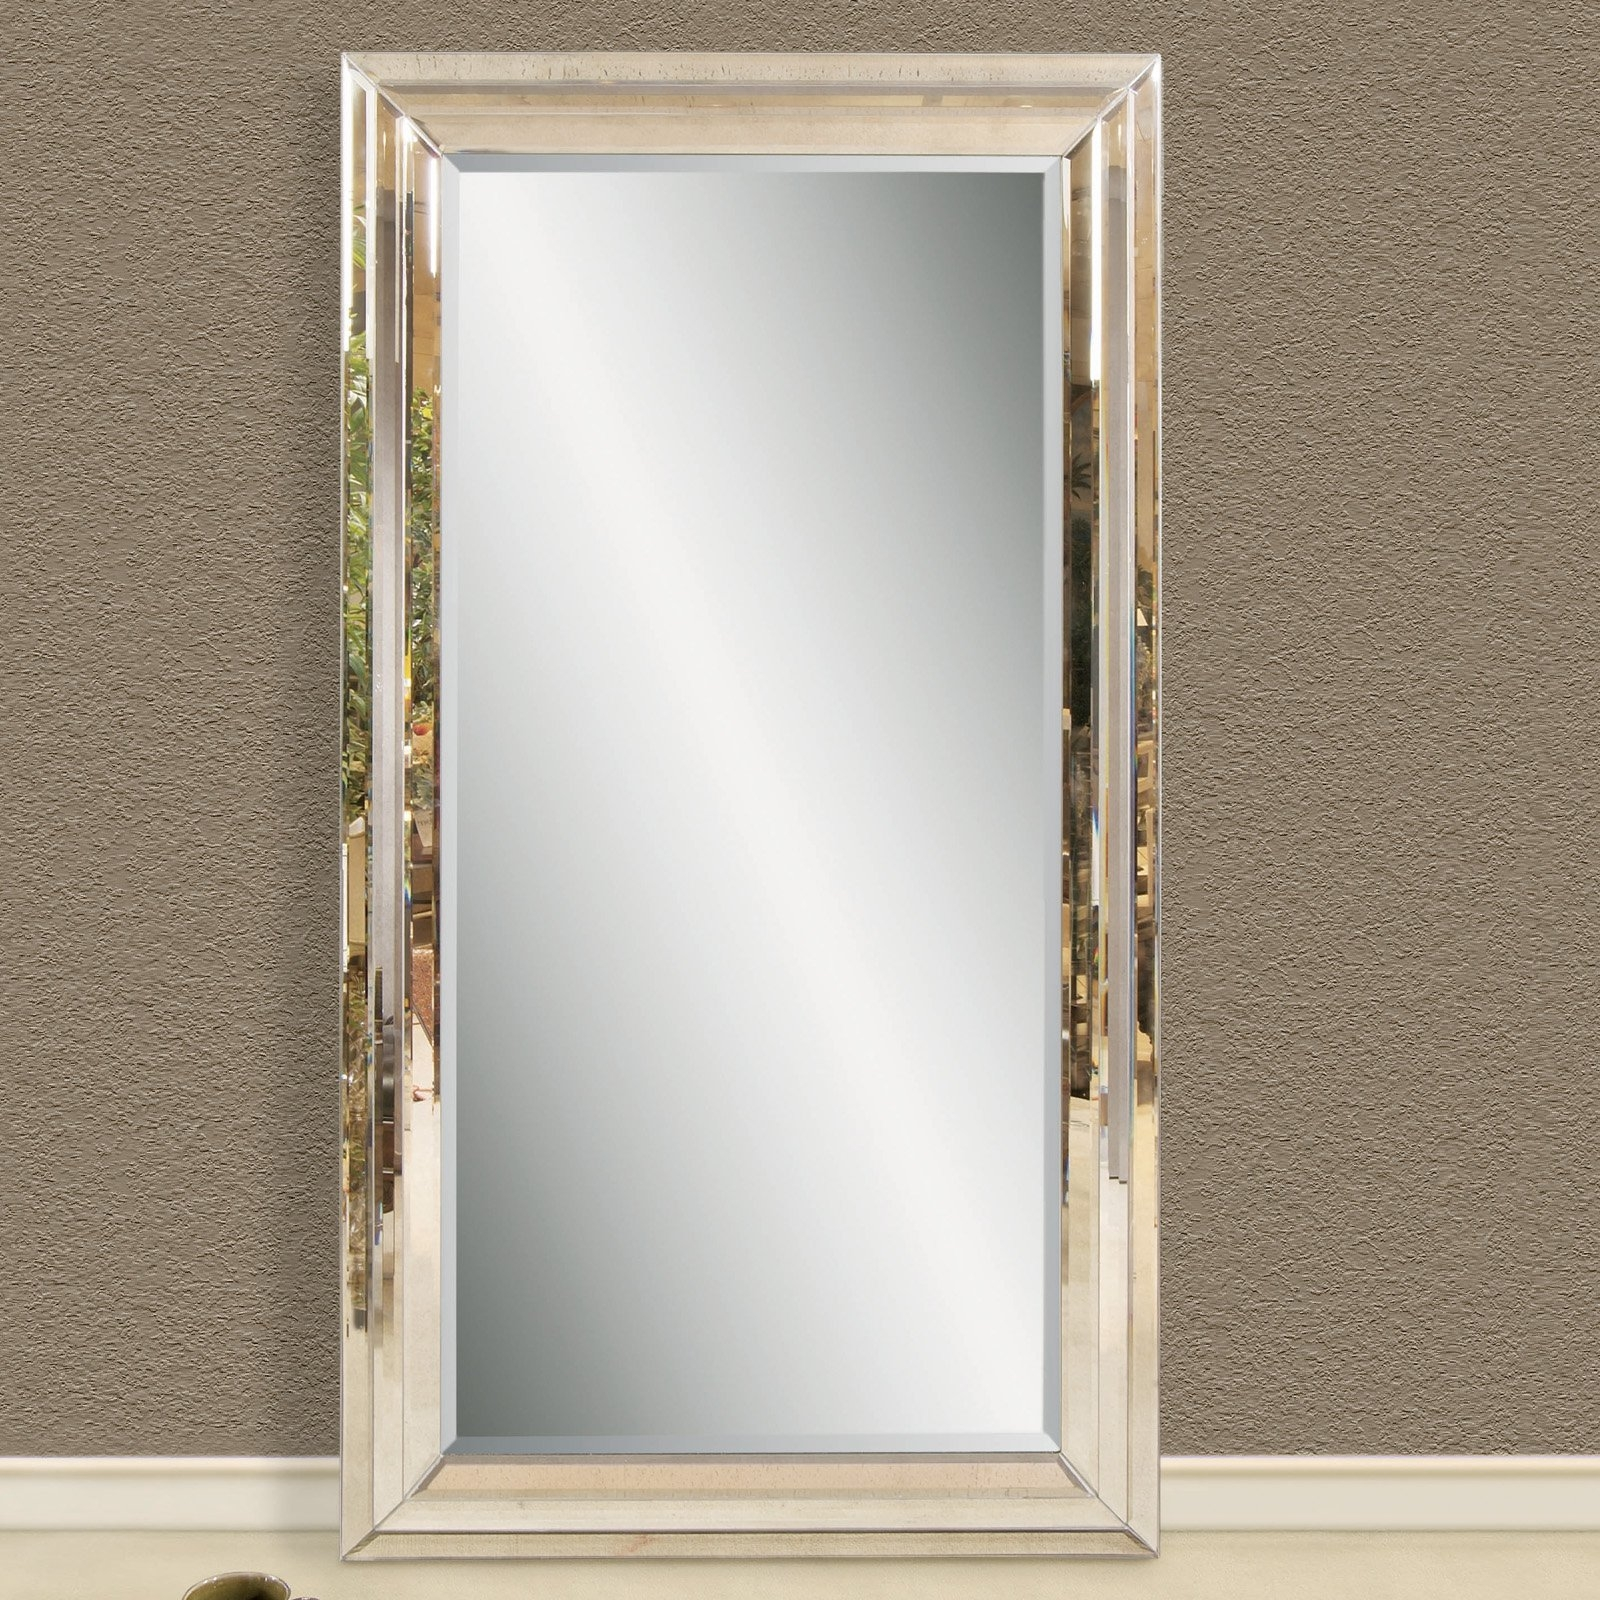 Big Mirrors For Sale 12 Enchanting Ideas With Large Leaning Intended For Oversized Mirrors For Sale (Image 6 of 15)